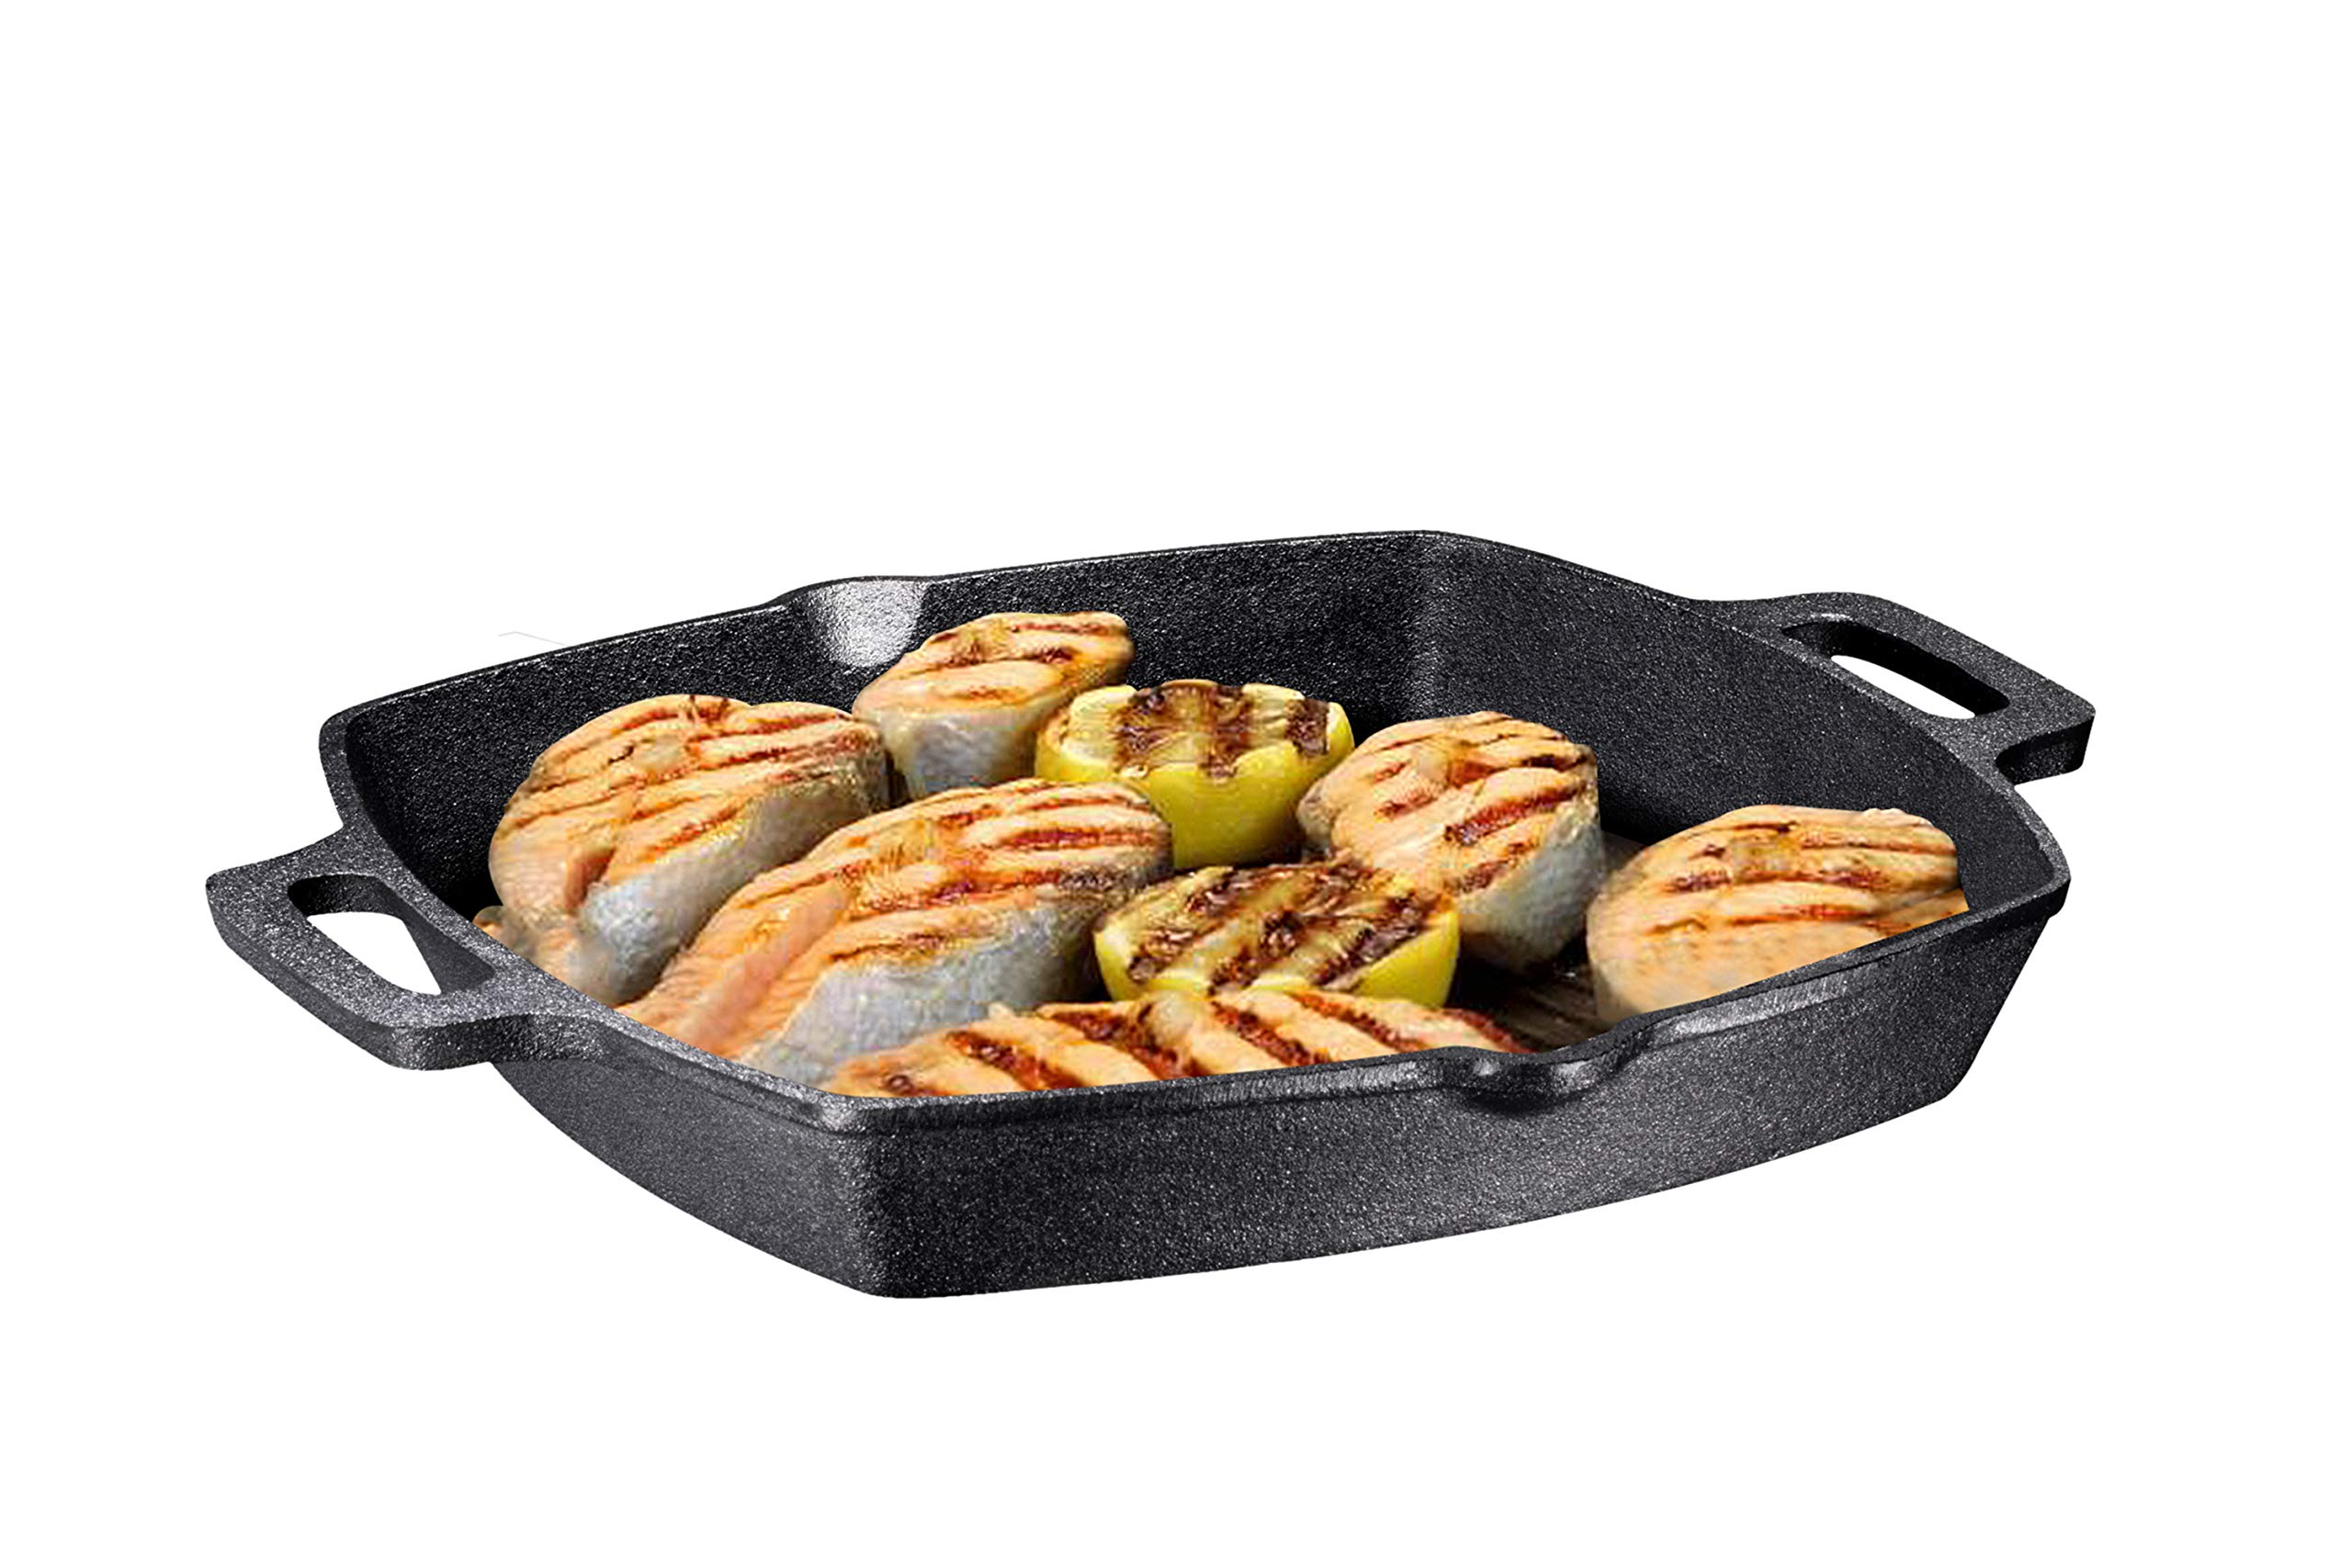 13 Inch Square Cast Iron Grill Pan Steak Pan Pre-seasoned Grill Pan with Easy Grease Drain Spout, with Large Loop Handles with Easy Grease Draining for Grilling Bacon, Steak, and Meats.